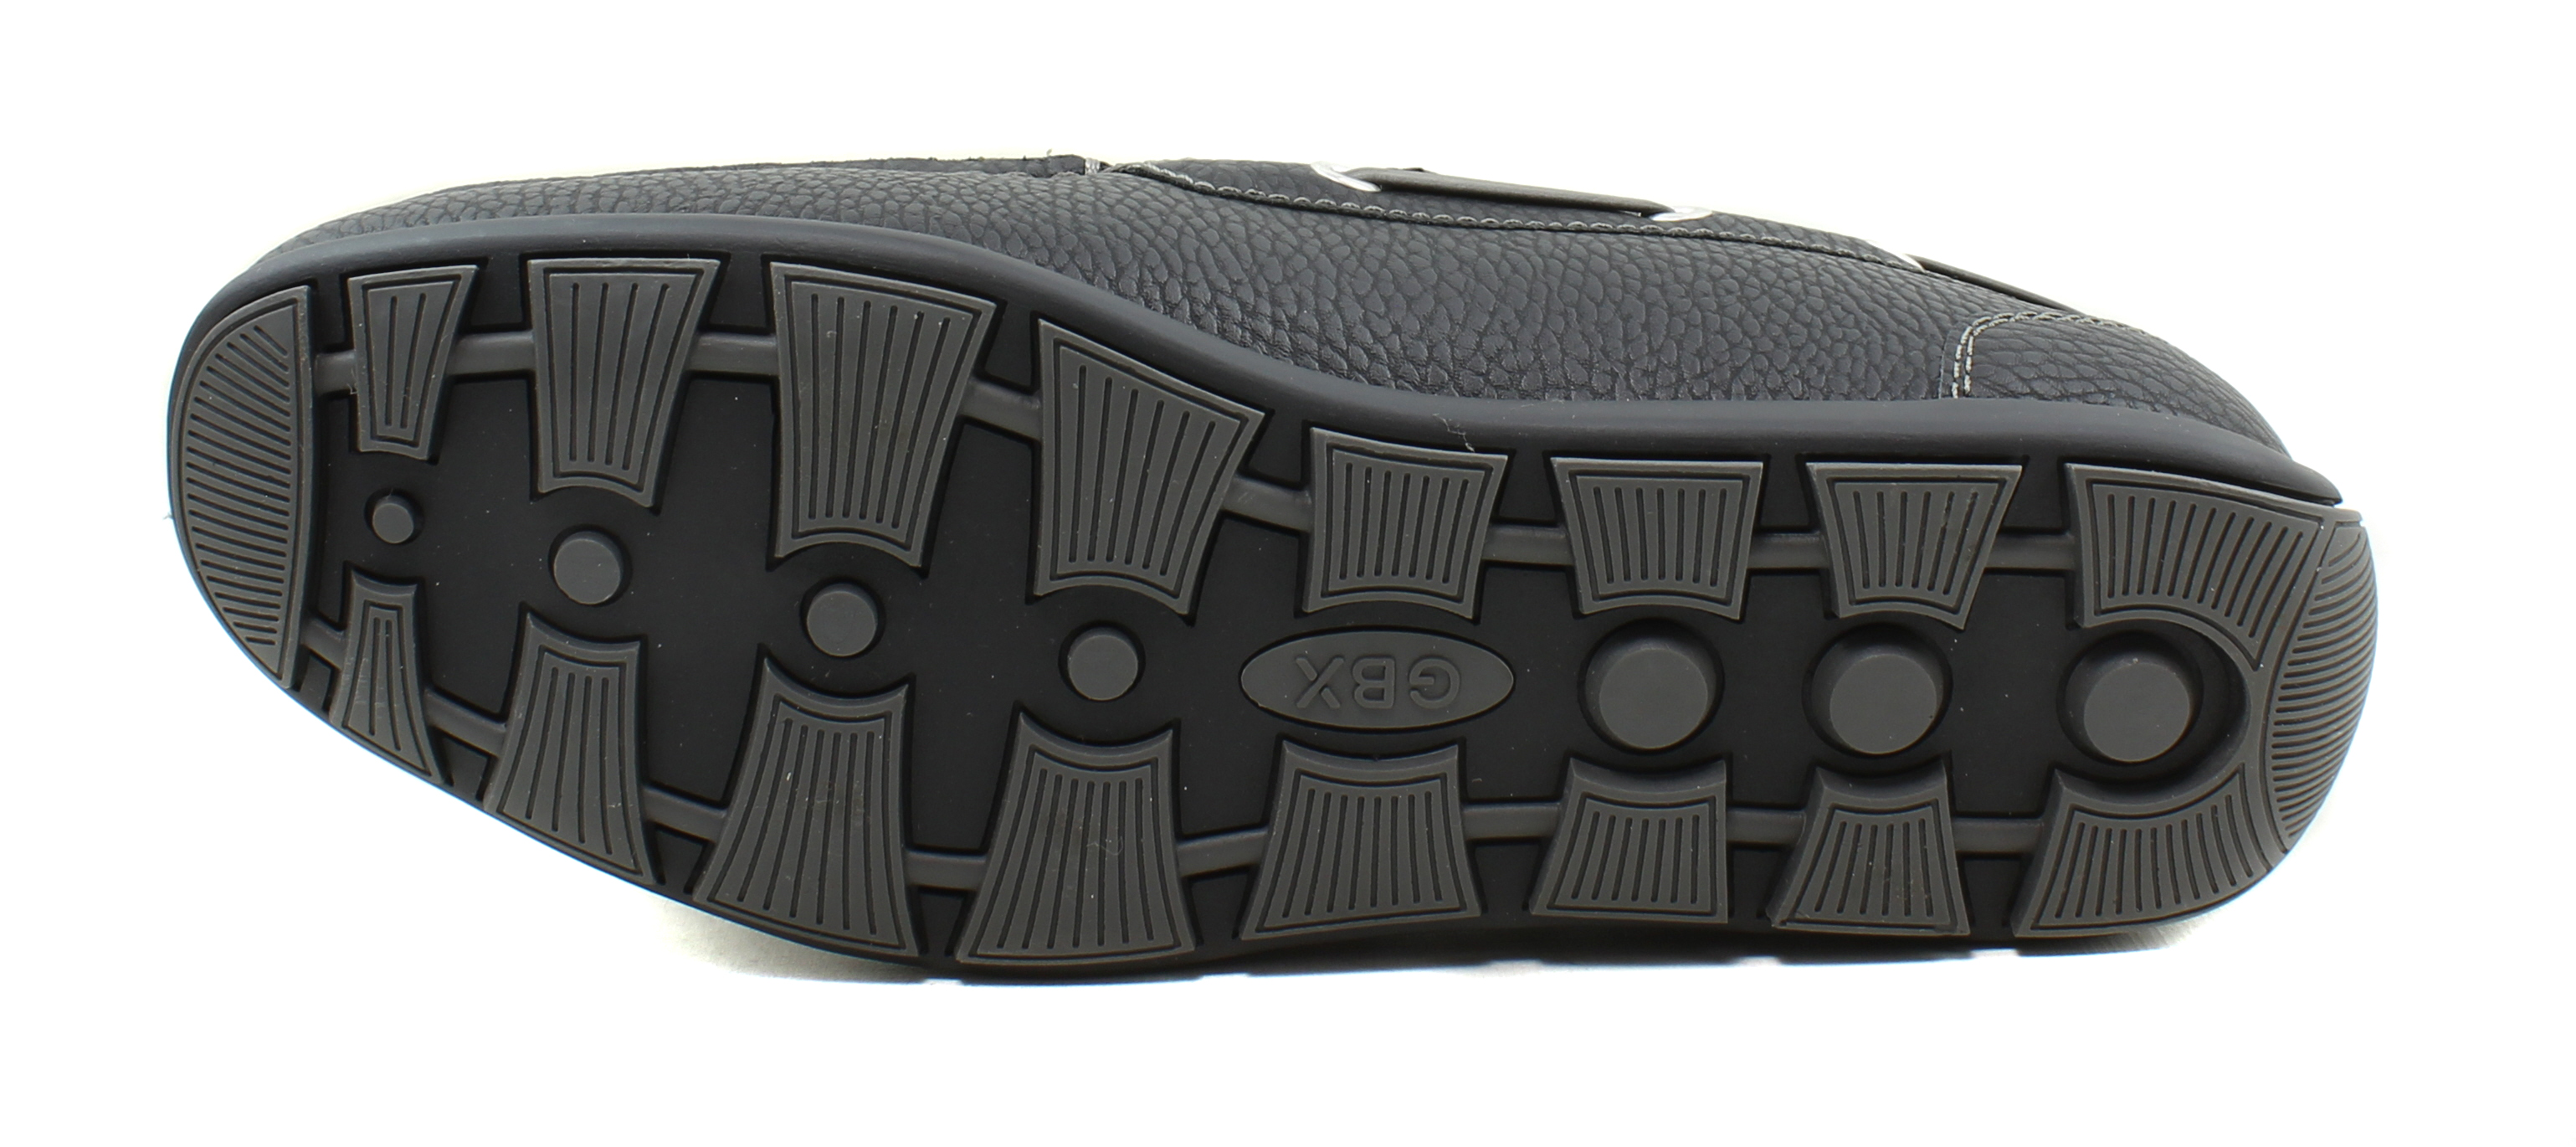 GBX-Mens-Ludlam-Casual-Moc-Toe-Slip-On-Boat-Shoe-Driving-Loafers thumbnail 9